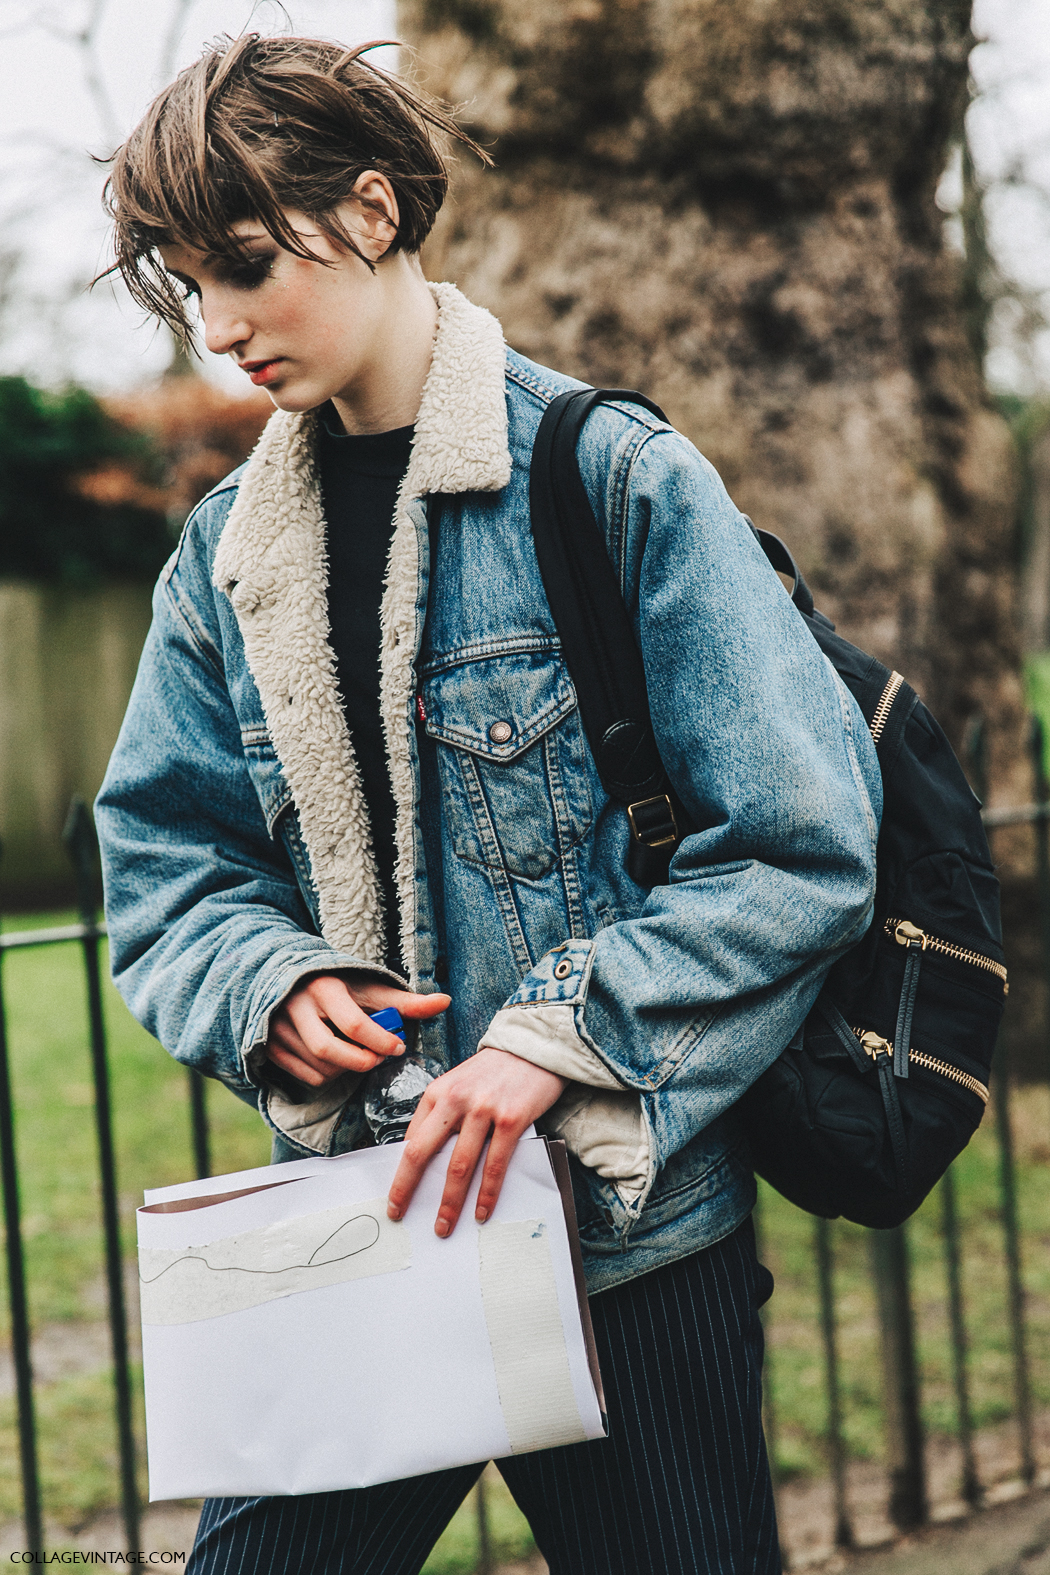 LFW-London_Fashion_Week_Fall_16-Street_Style-Collage_Vintage-Denim_Jacket-Levis-Burberry